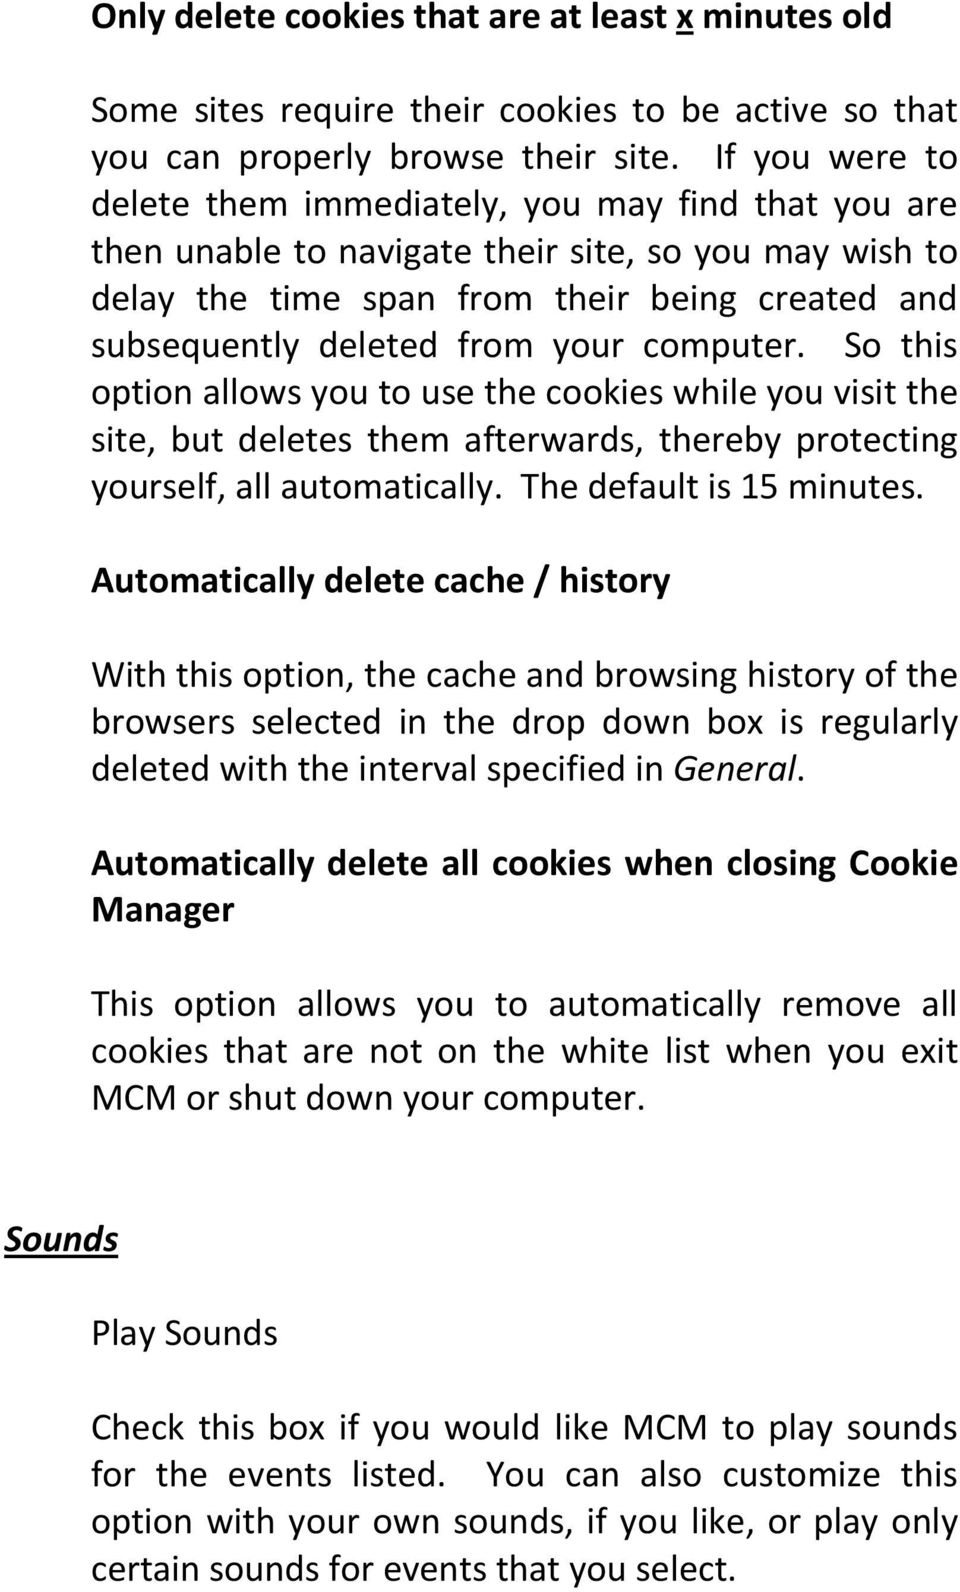 your computer. So this option allows you to use the cookies while you visit the site, but deletes them afterwards, thereby protecting yourself, all automatically. The default is 15 minutes.